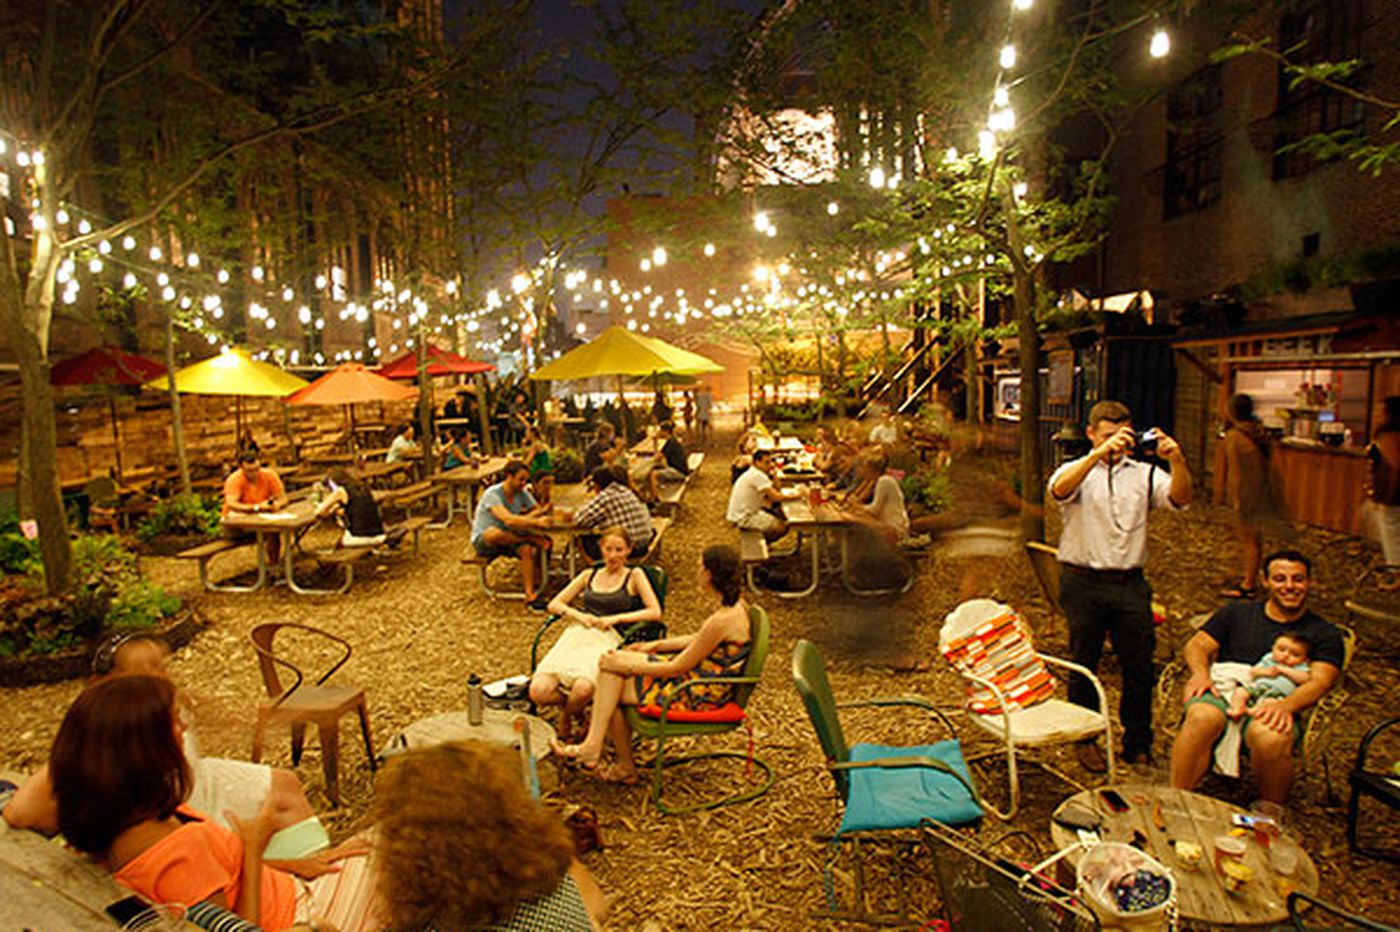 Beer gardens are sprouting all over Philadelphia